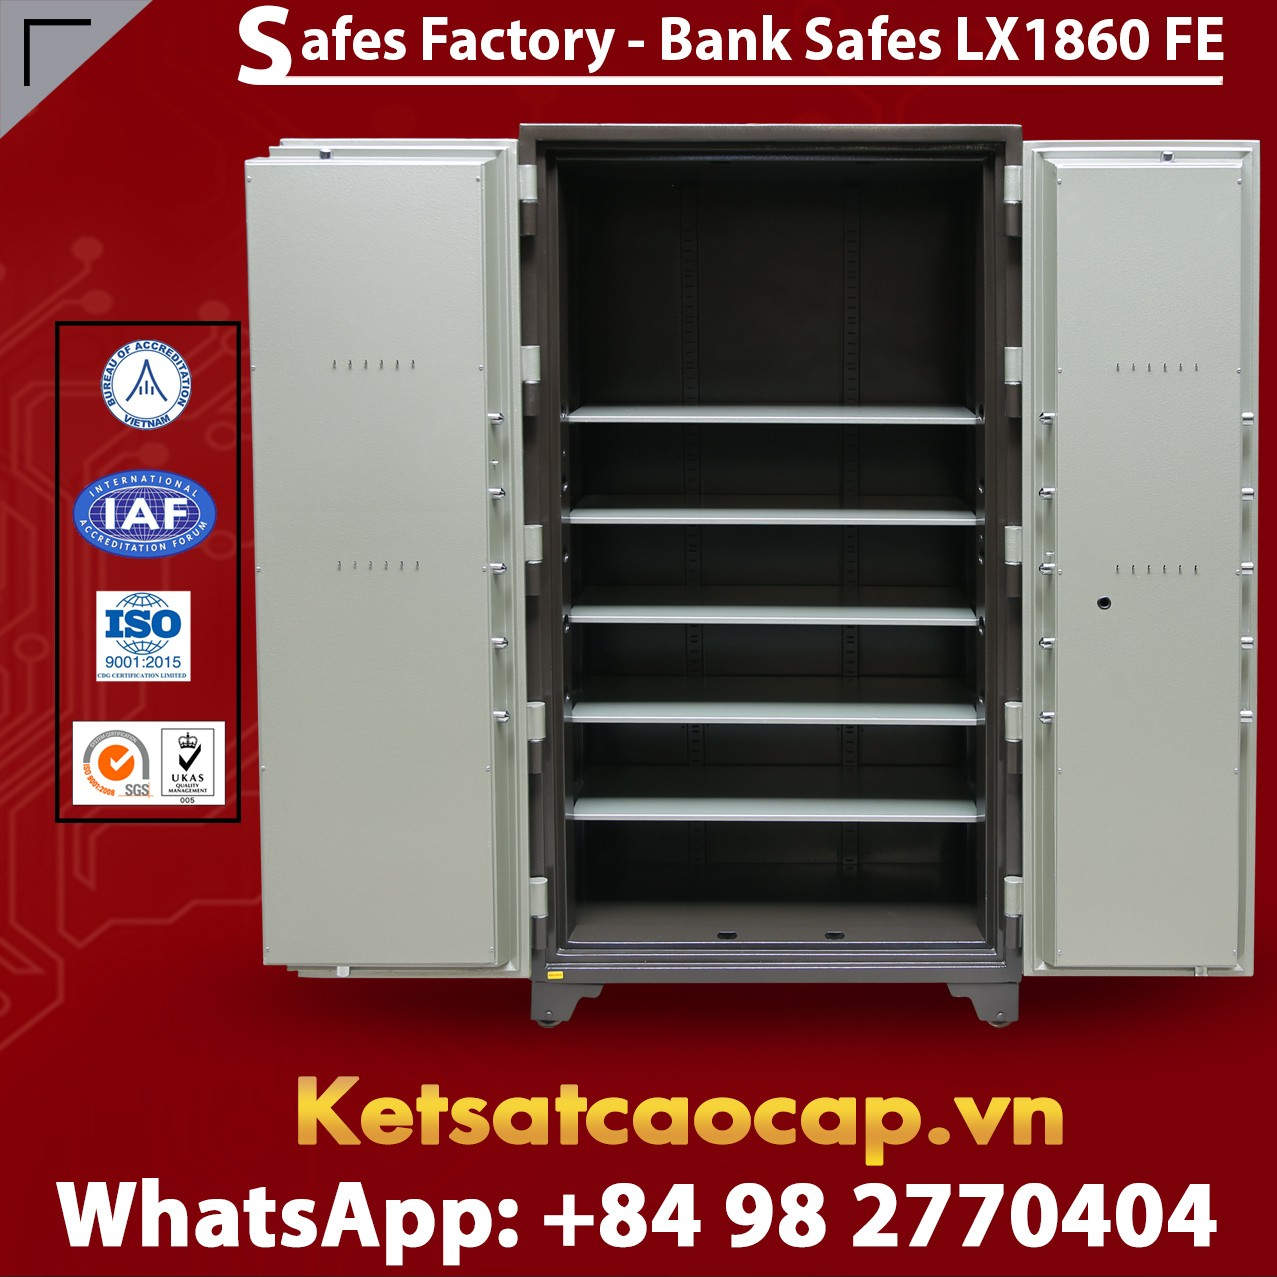 Bank Safes LX 1860 FE Two Door Fingerprint Electronic Locking System